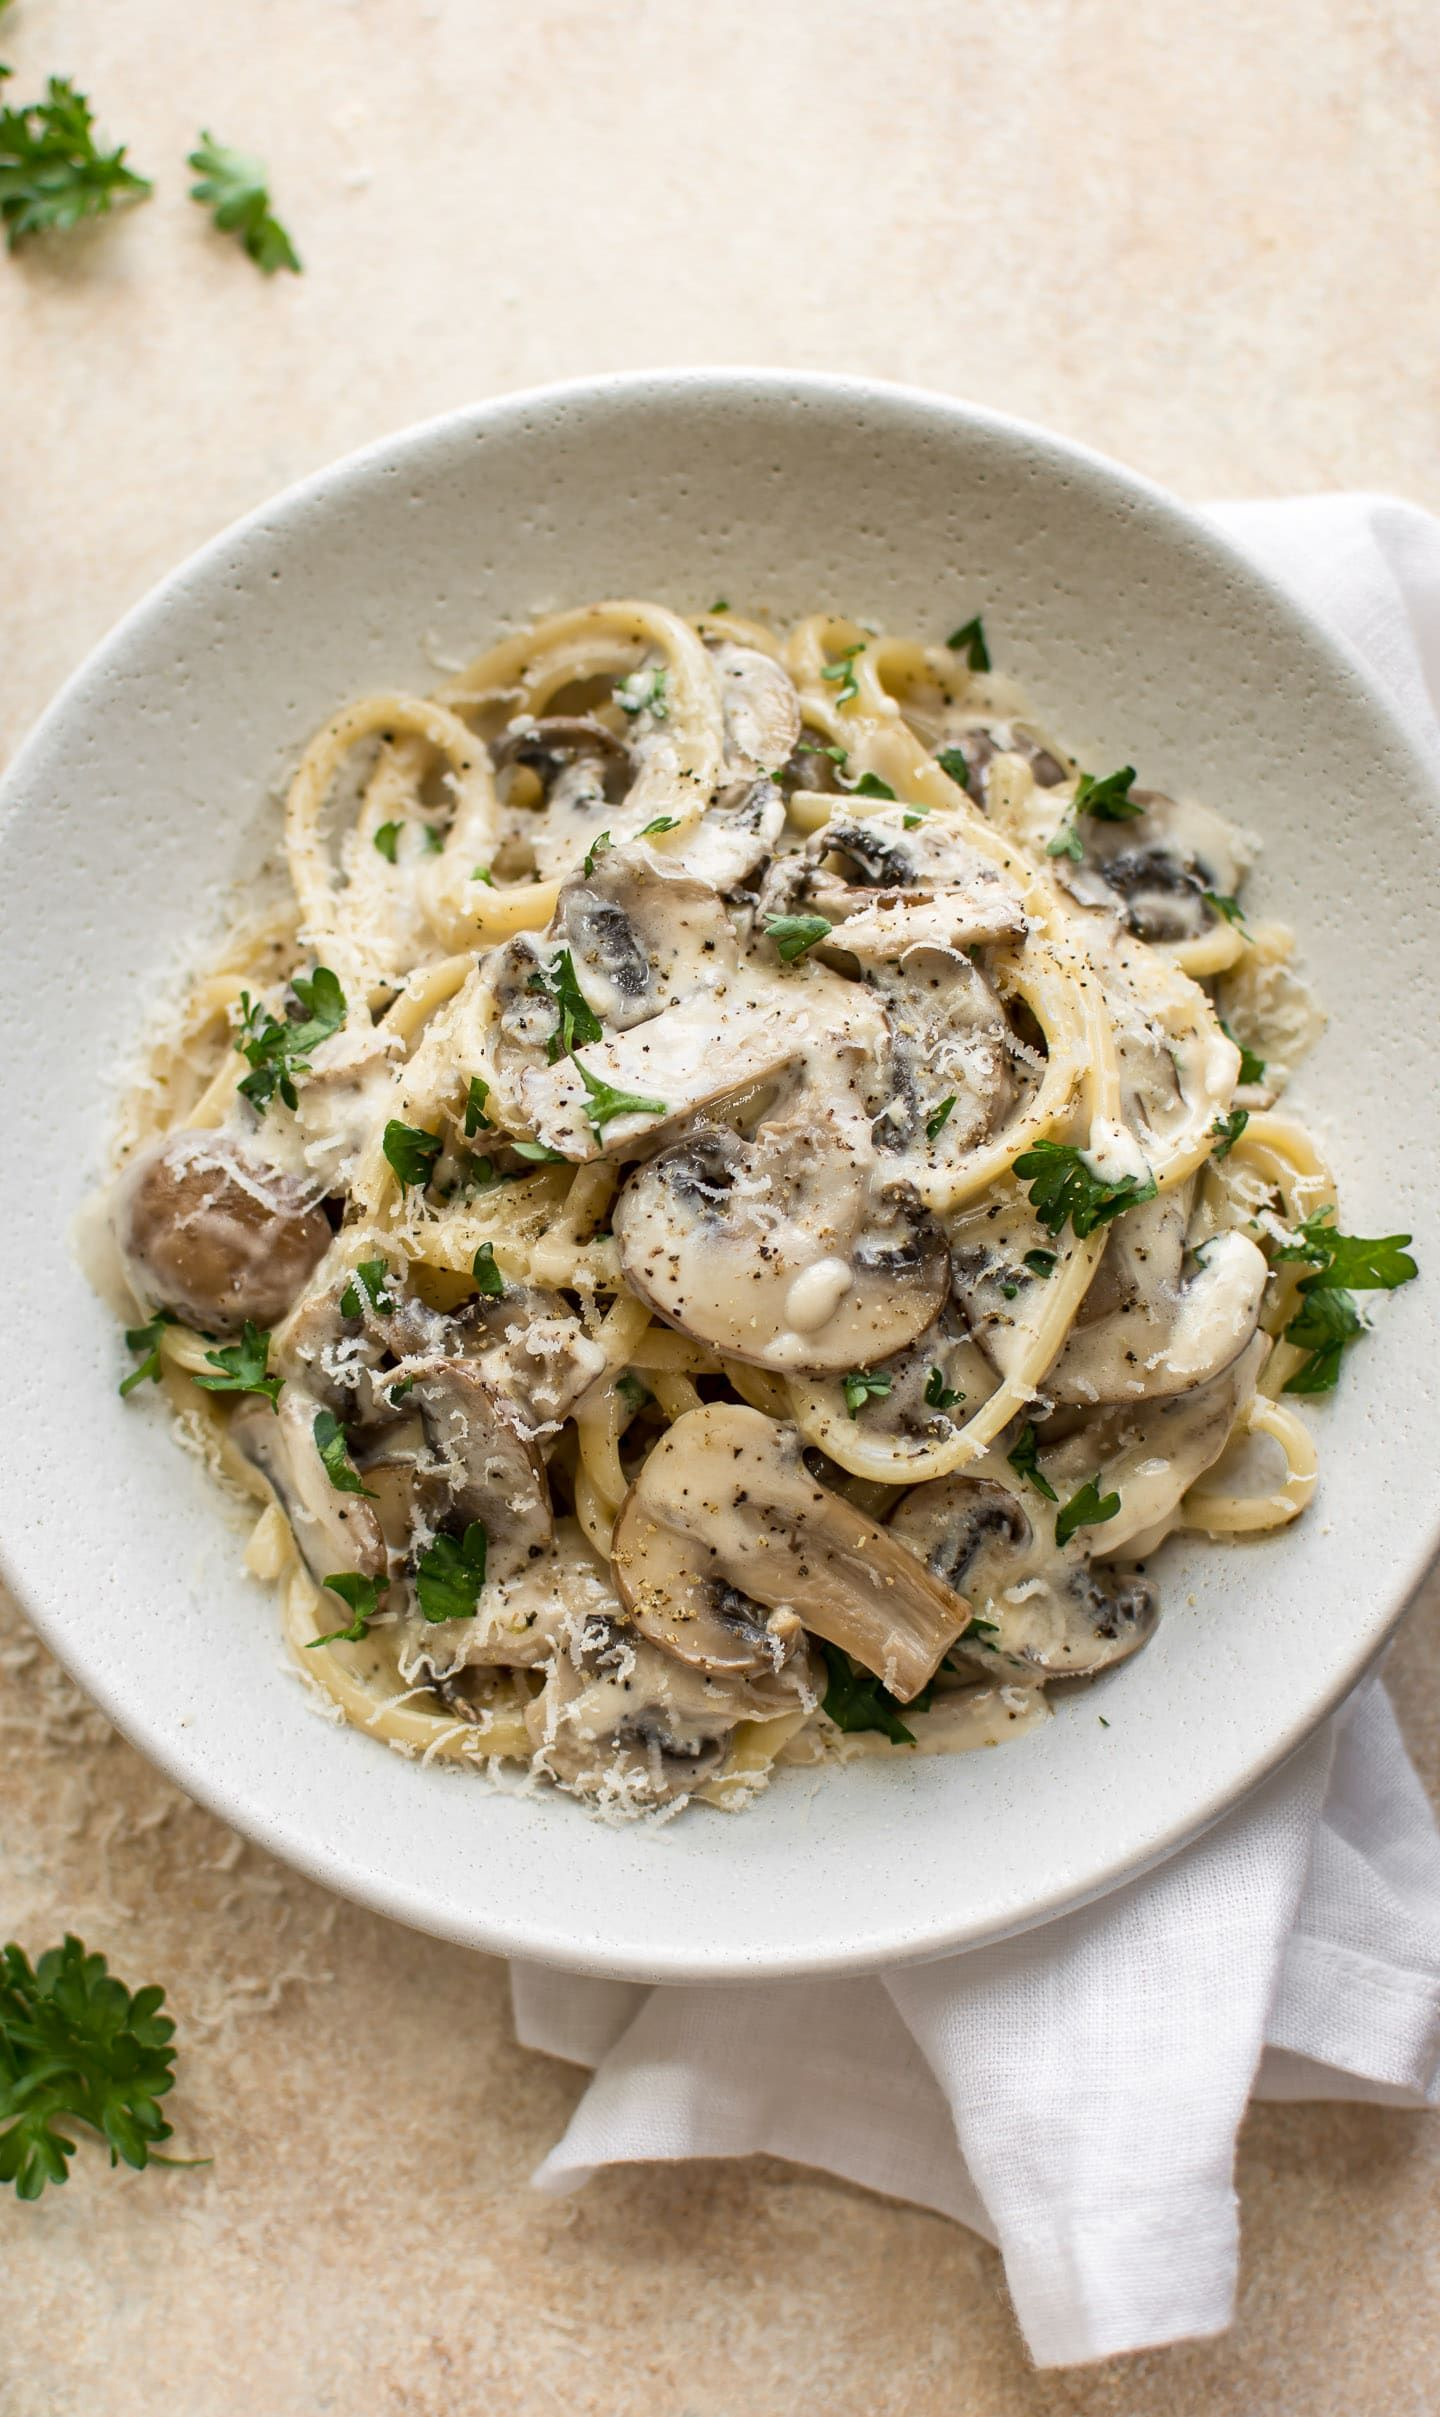 This Easy Mushroom Pasta Recipe Is Loaded With Good Stuff White Wine Garlic Dijon Mustard Butter Creamy Mushroom Pasta Pasta Dishes Mushroom Recipes Pasta